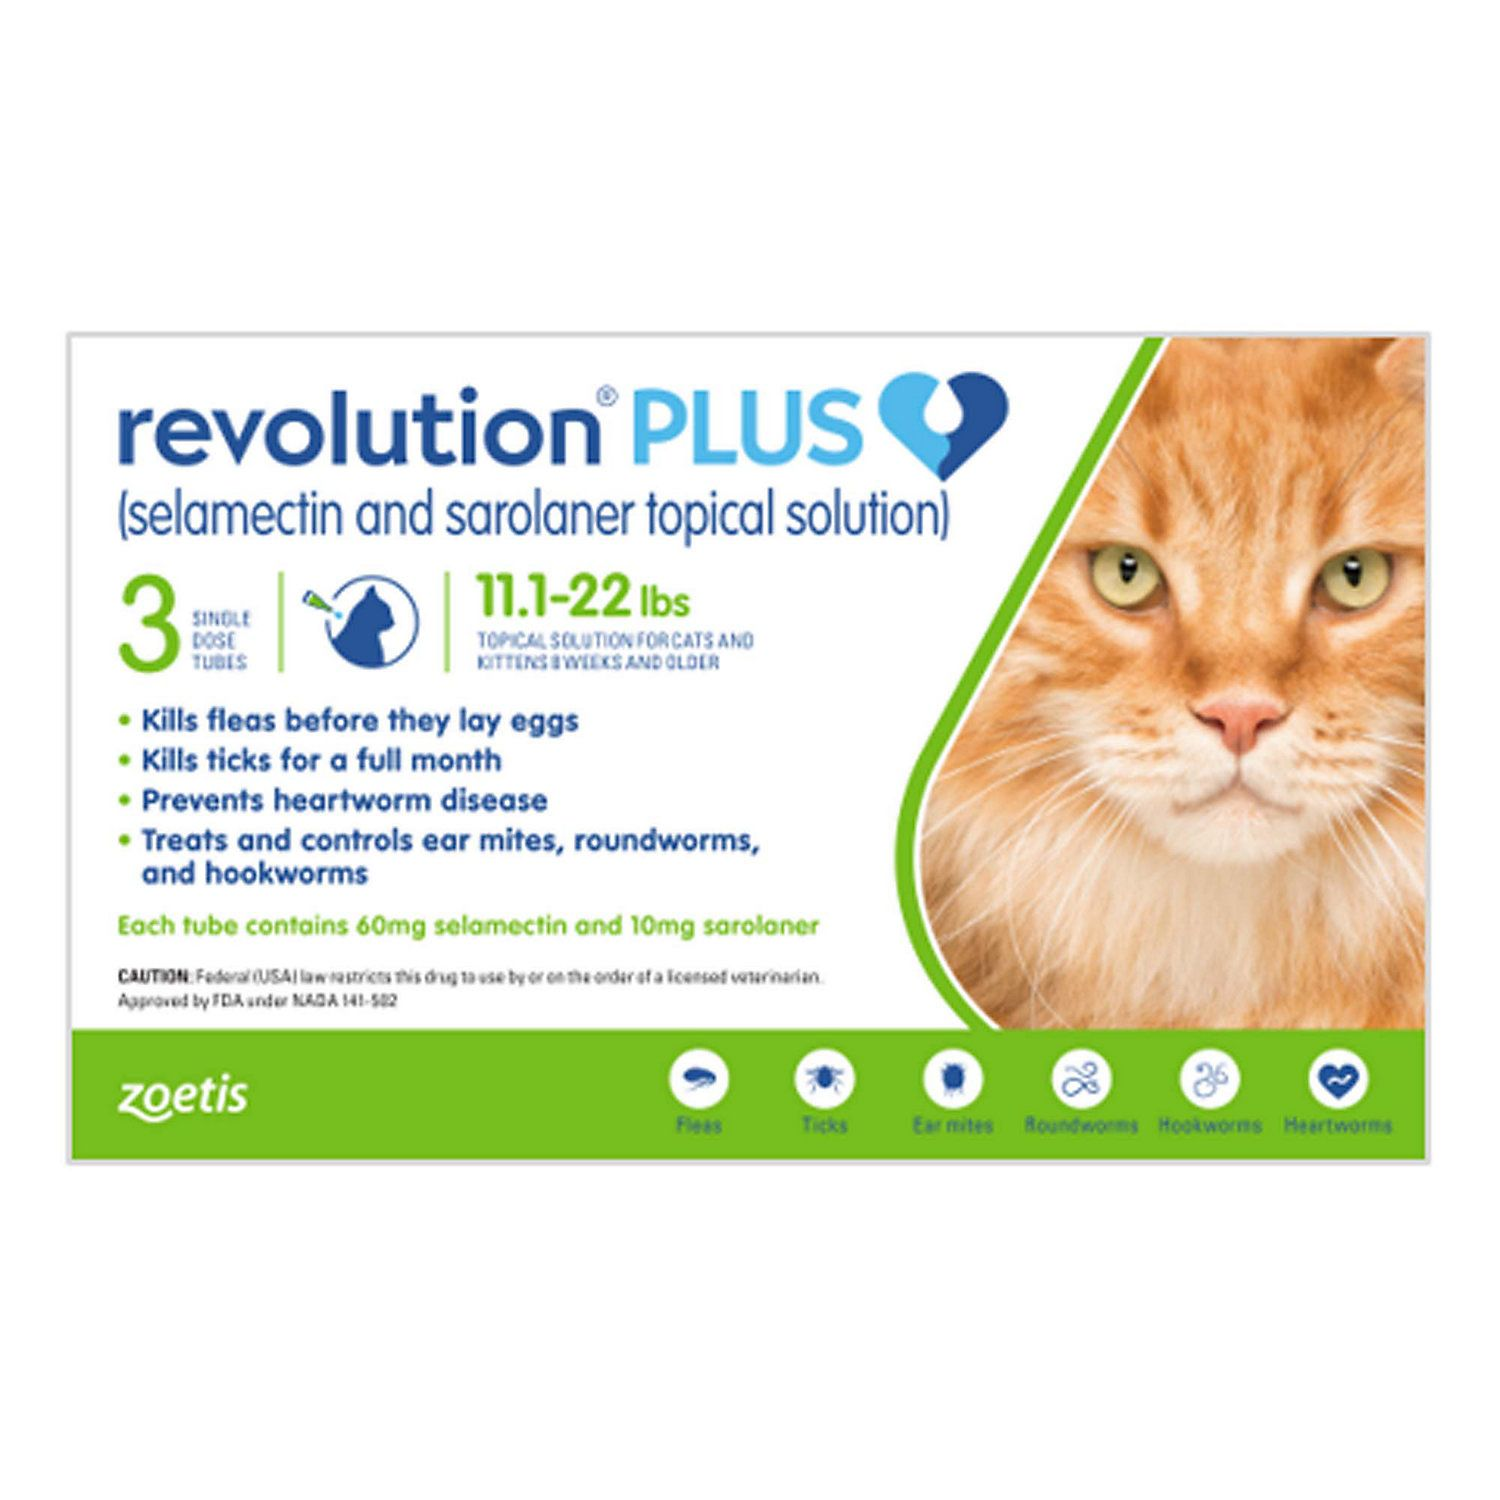 Revolution Plus Topical Solution 11 1 22lbs Cat Pack Of 3 3 Ct In 2020 Cat Medication Fleas Cat Medicine